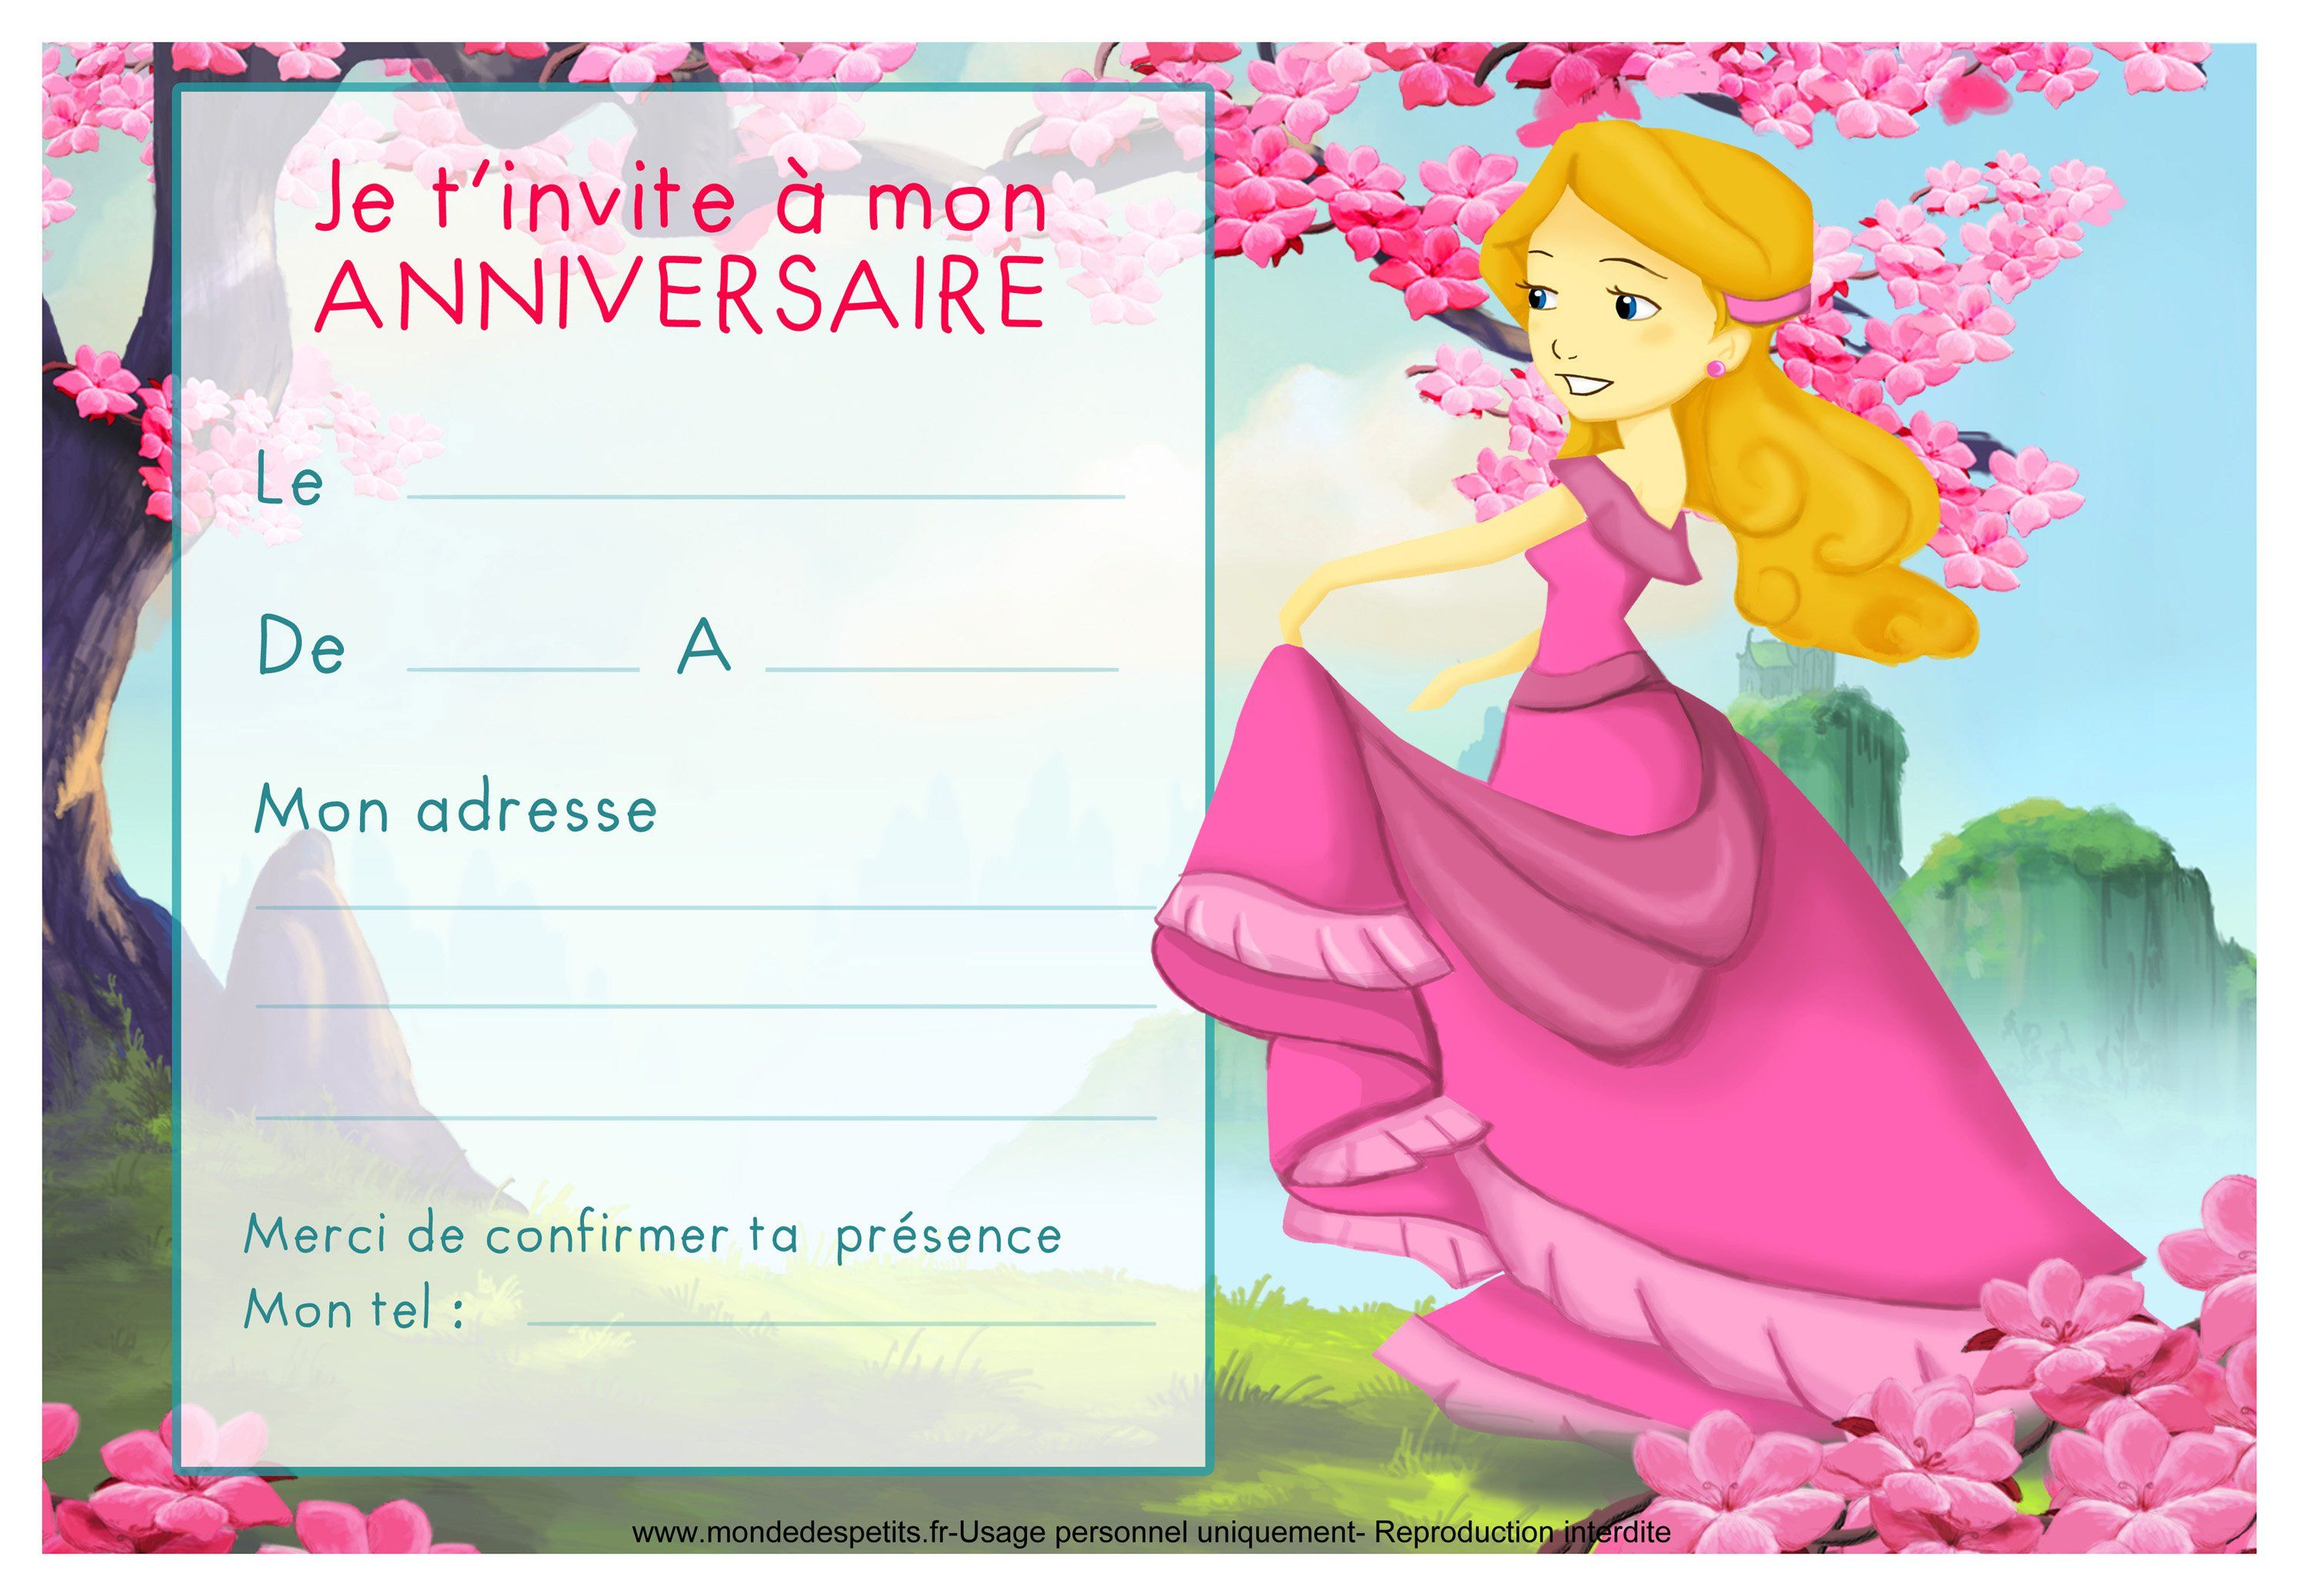 Berühmt Cartes Invitation Anniversaire à Imprimer : Cartes Invitation  DB89